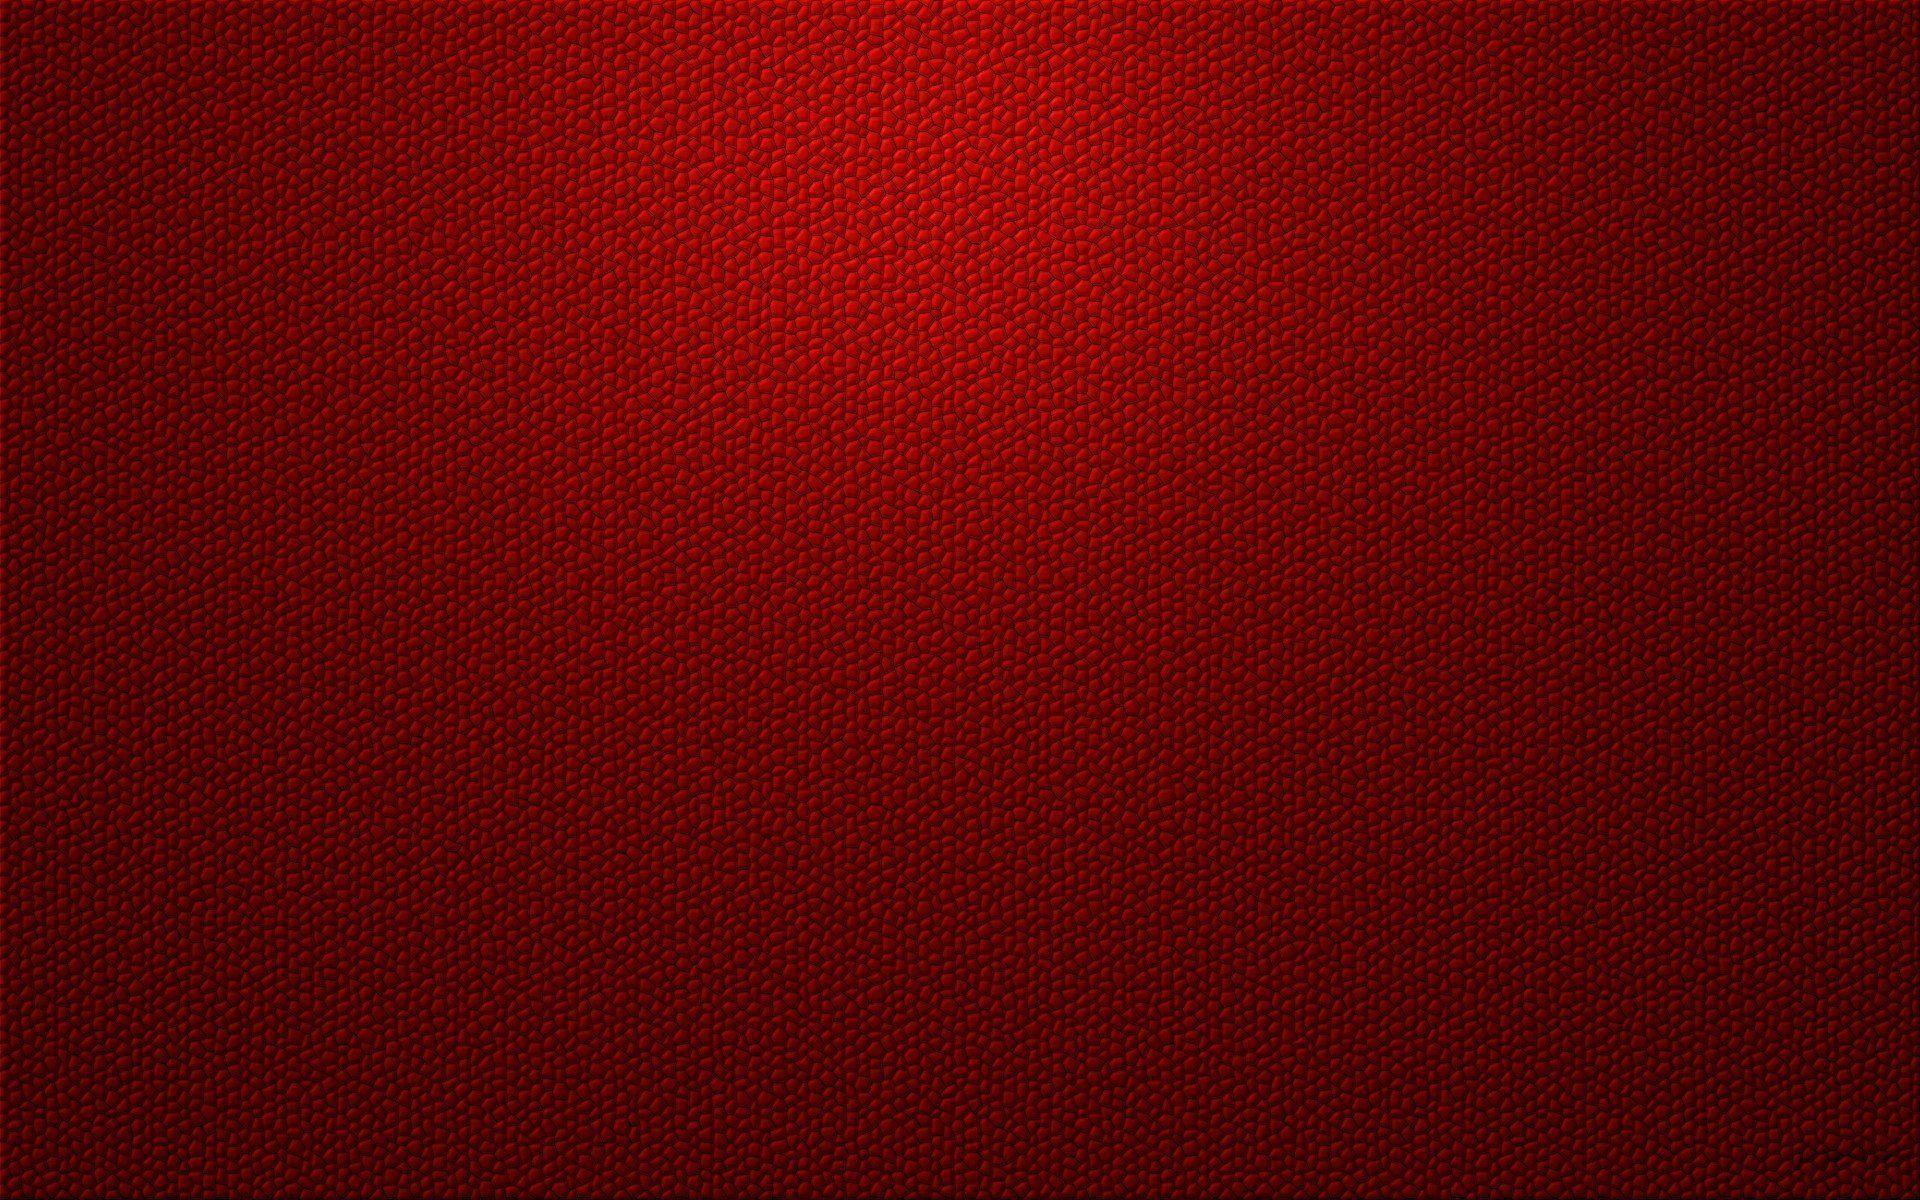 Red Texture Backgrounds